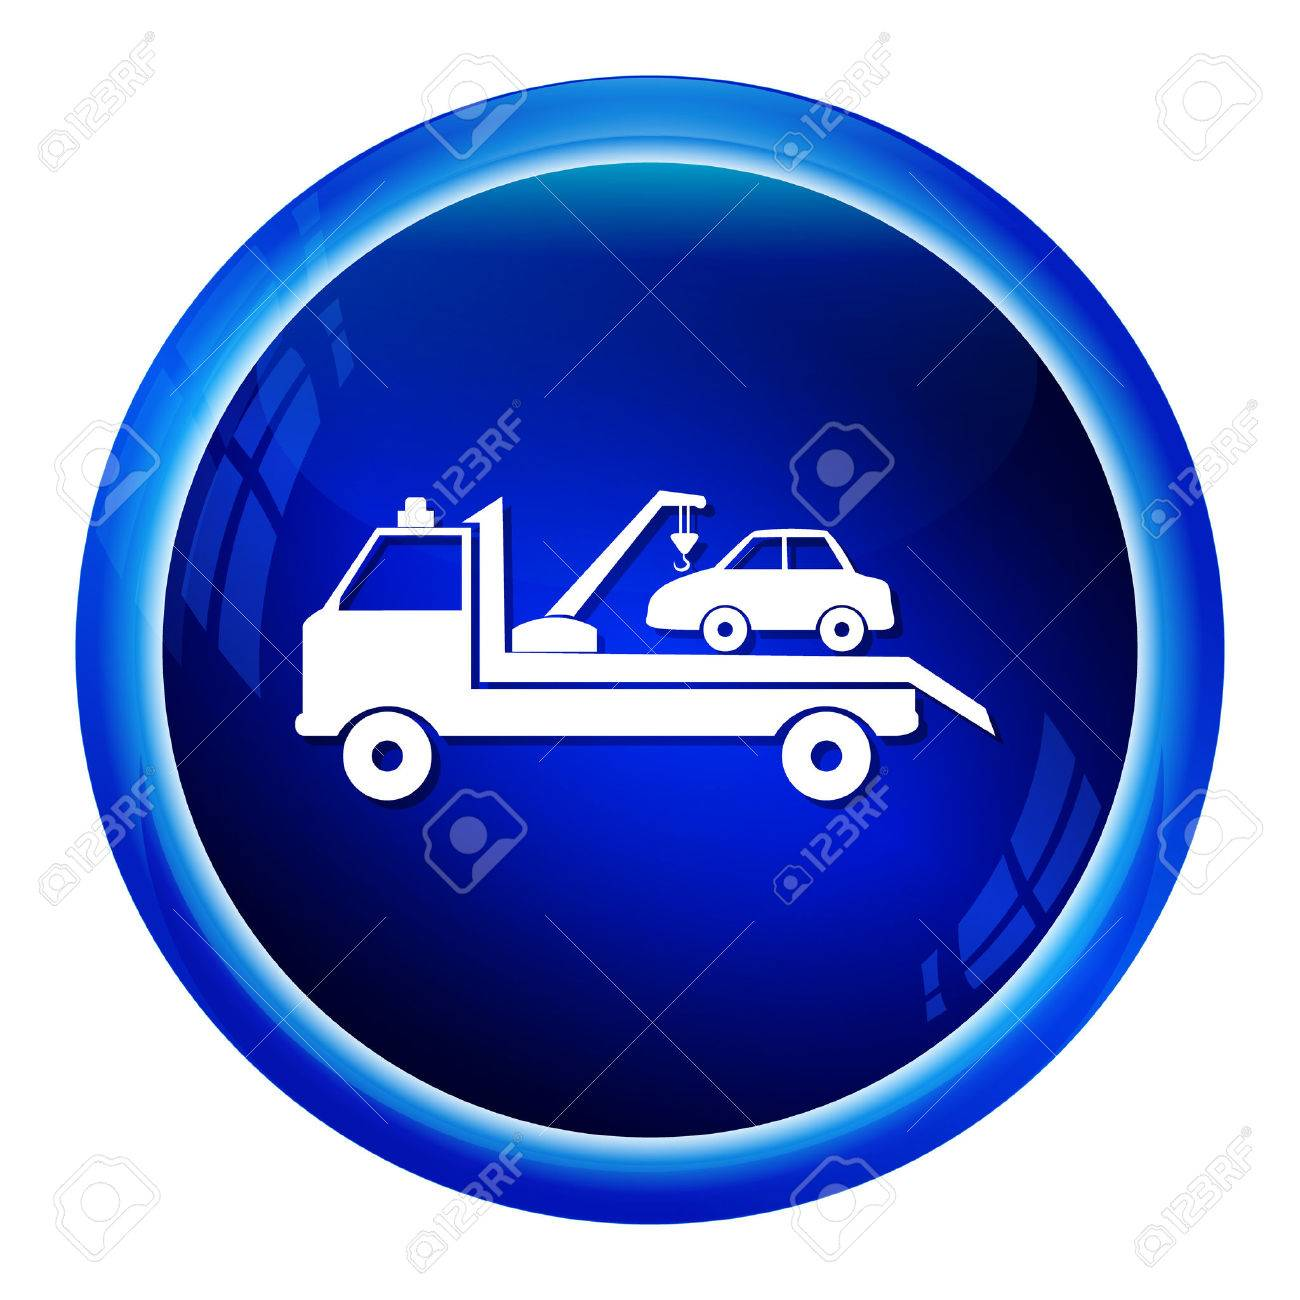 Car Towing Truck Icon Vector Illustration Royalty Free Cliparts